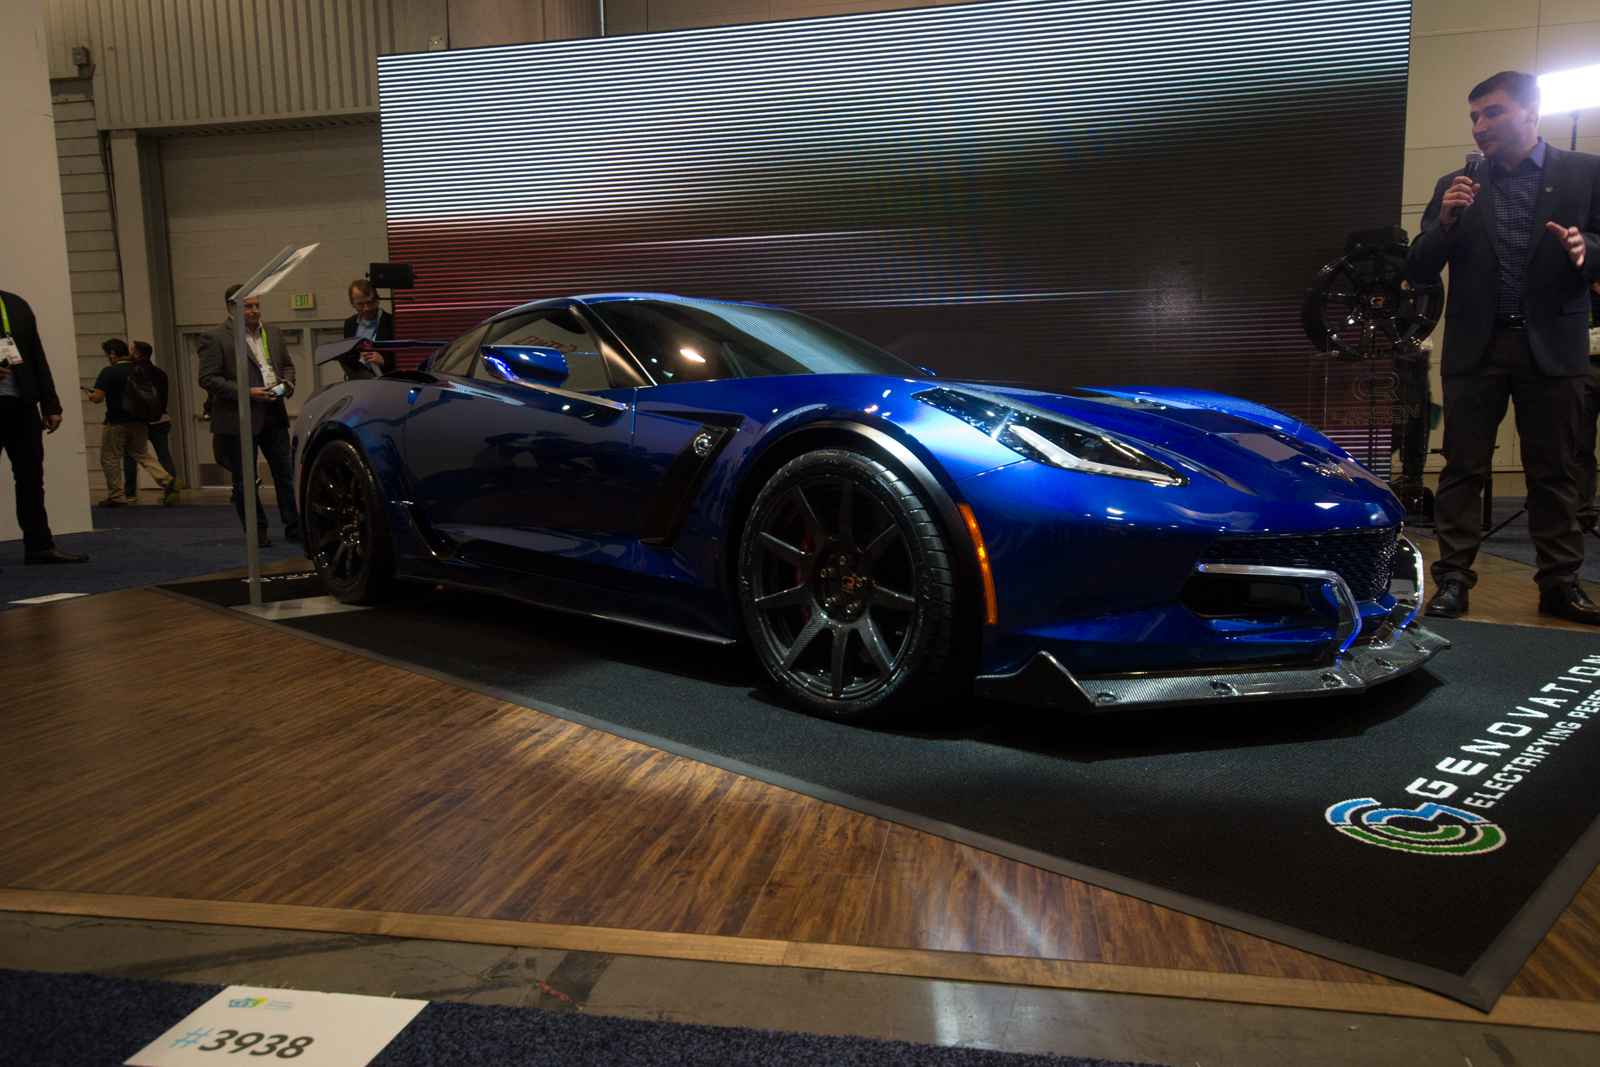 The Genovation Gxe Is An 800 Hp Electric Ed Chevrolet Corvette C7 Grand Sport Using Two Motors And A 61 6 Kwh Battery It S Capable Of Topping 220